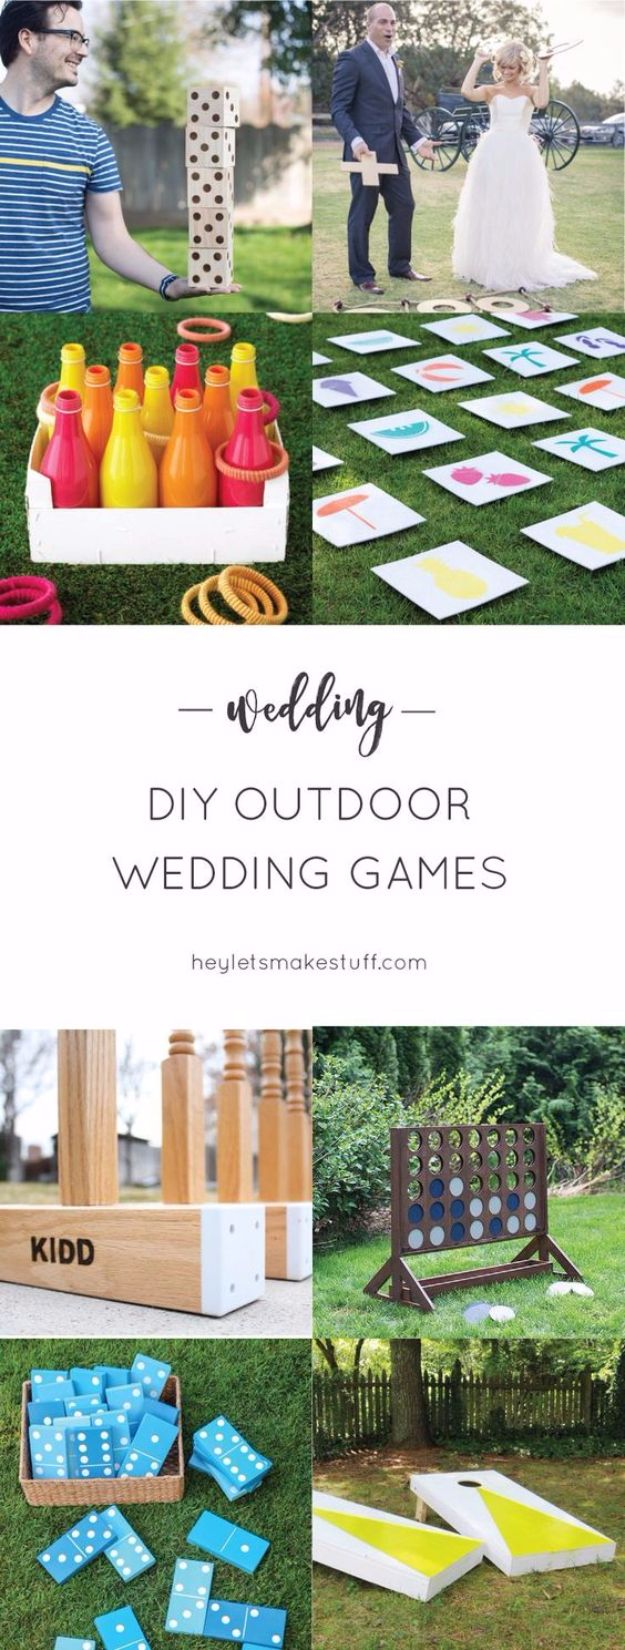 DIY Outdoors Wedding Ideas - DIY Outdoor Wedding Games - Step by Step Tutorials and Projects Ideas for Summer Brides - Lighting, Mason Jar Centerpieces, Table Decor, Party Favors, Guestbook Ideas, Signs, Flowers, Banners, Tablecloth and Runners, Napkins, Seating and Lights - Cheap and Ideas DIY Decor for Weddings http://diyjoy.com/diy-outdoor-wedding